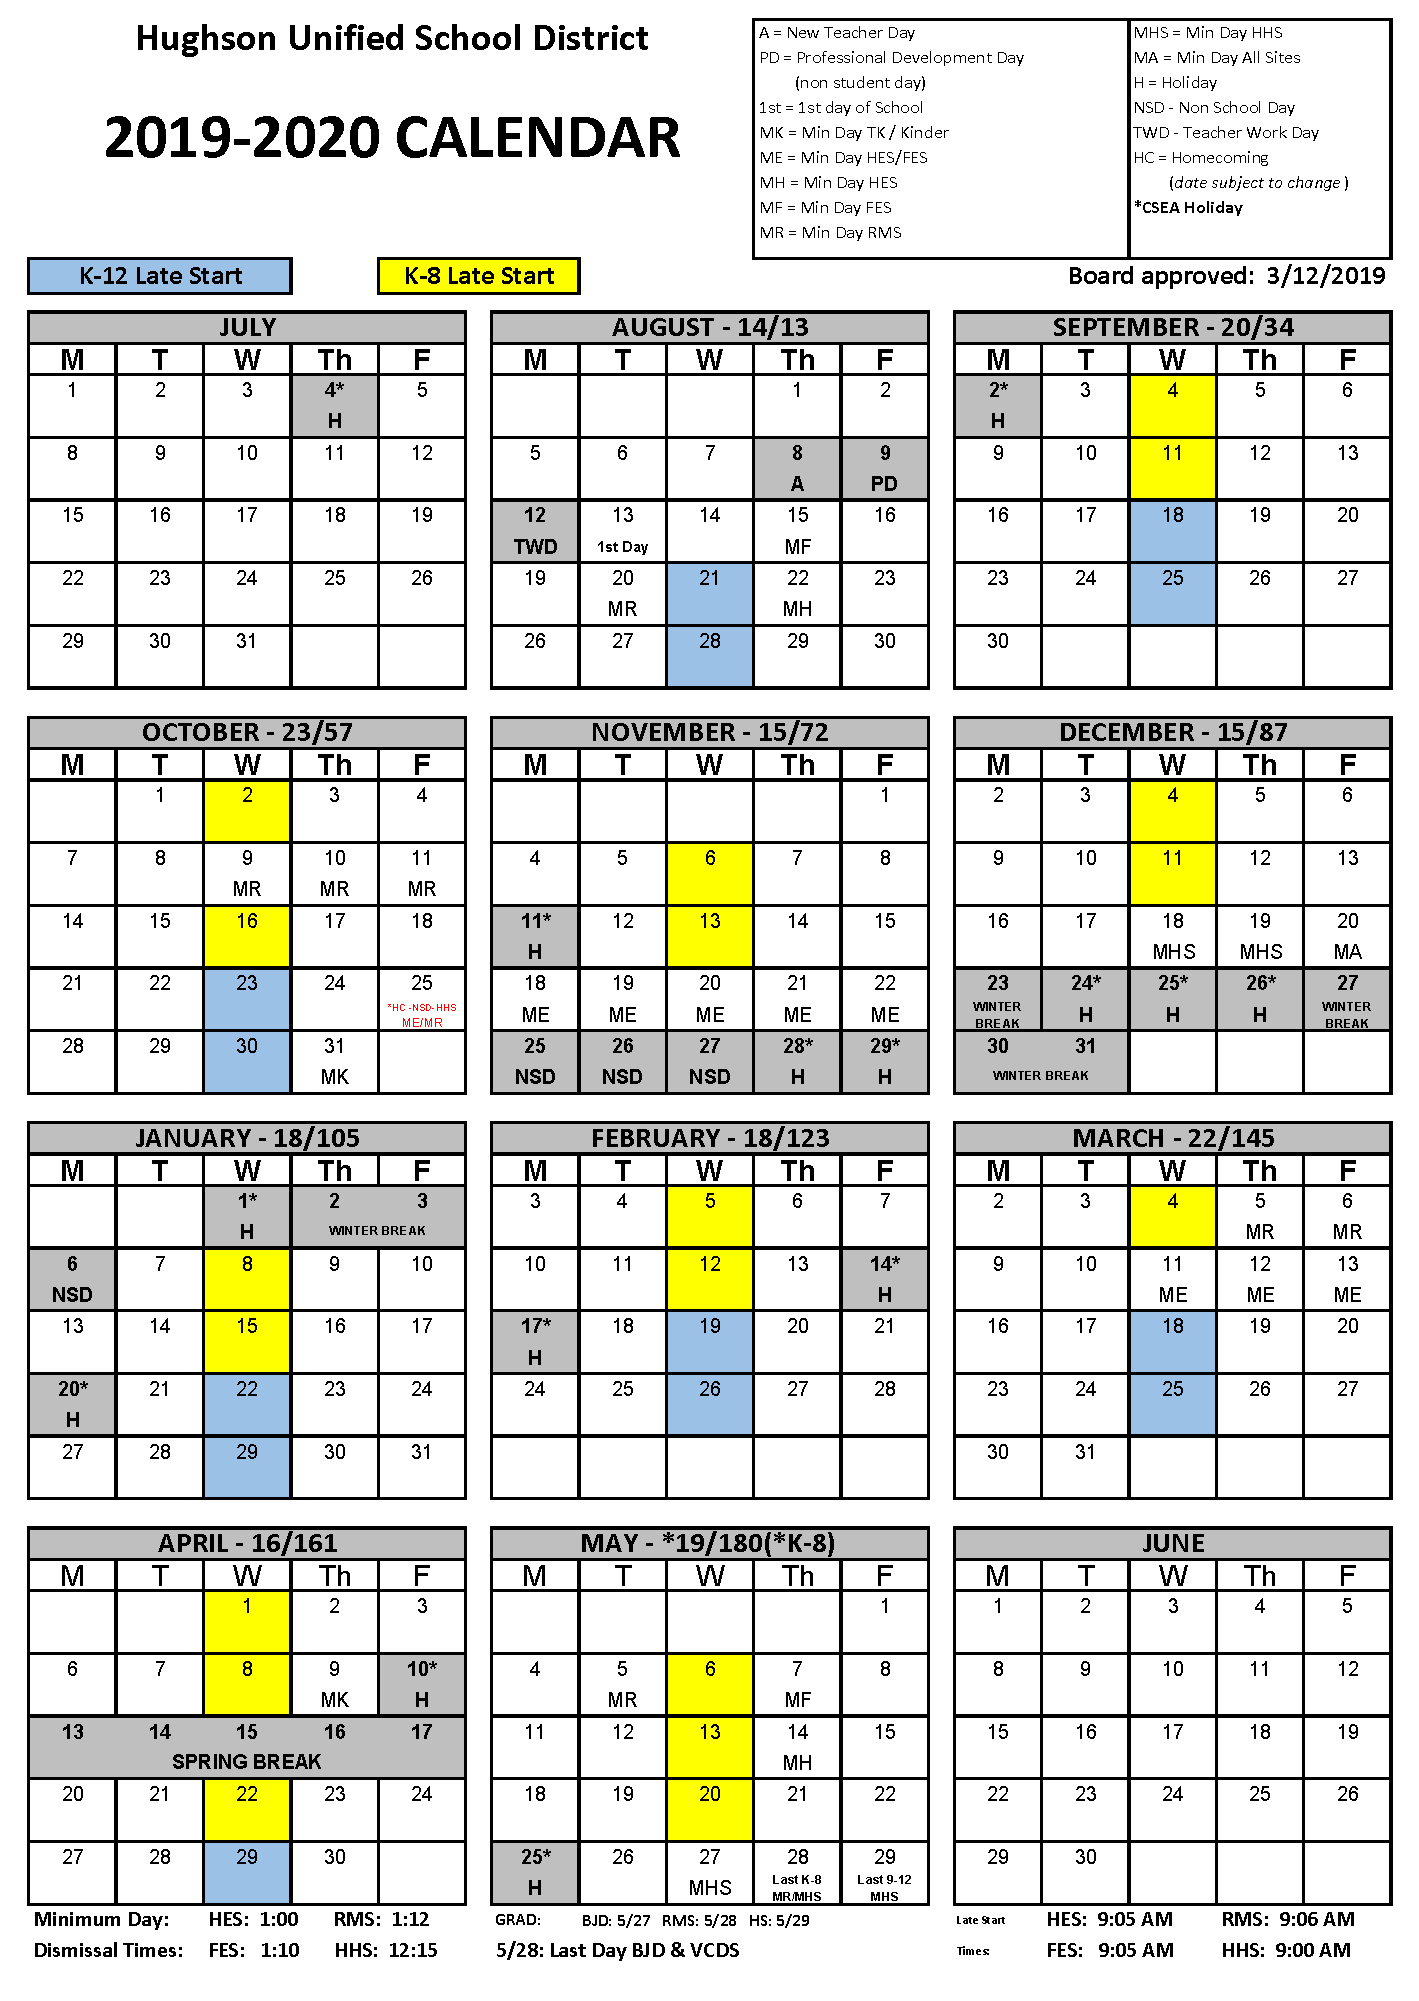 Calendar - Hughson Unified School District For Canyon University Vacation Calender